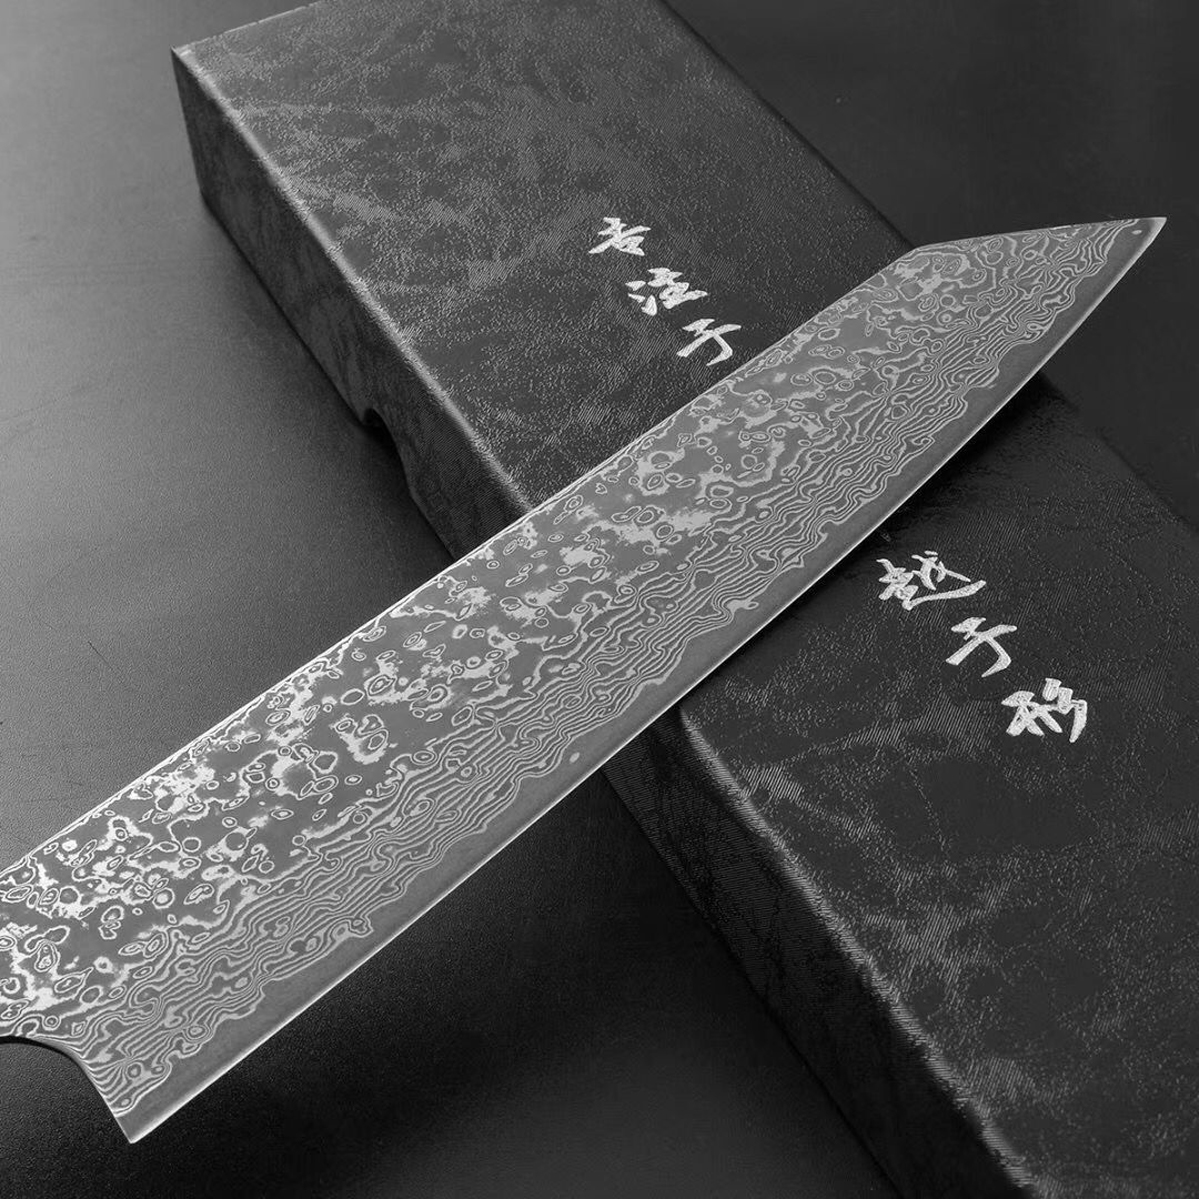 Damascus Gyuto Knife with Octagcnal Stabilized Wood Handle Kitchen Knives Kiritsuke Sashimi Salmon Sushi 8 inch Chef Knife